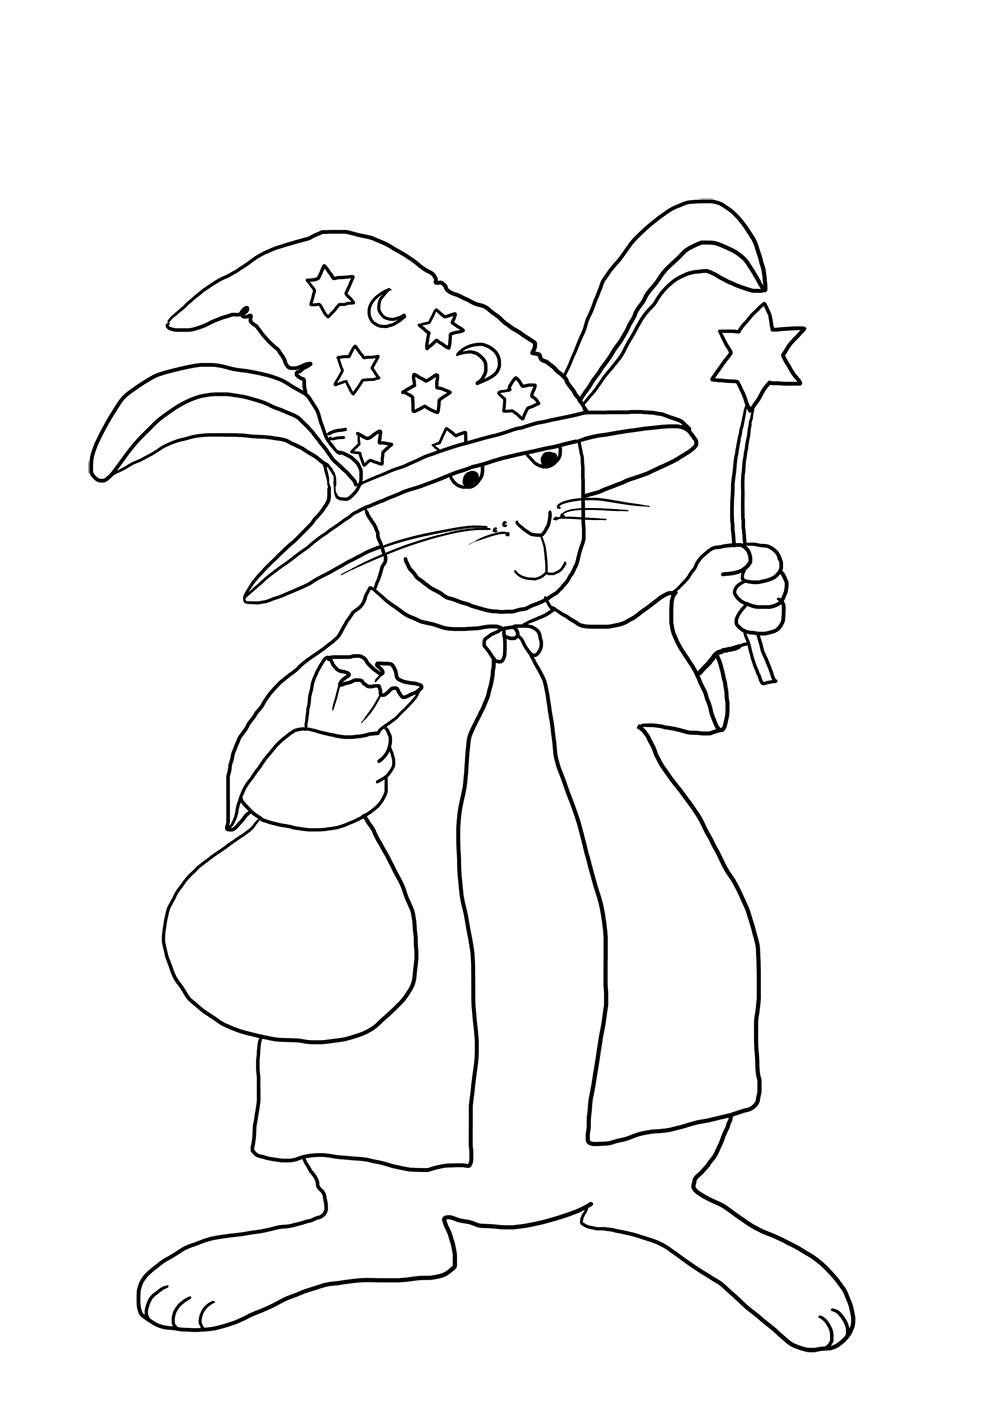 rabbit in halloween witch costume